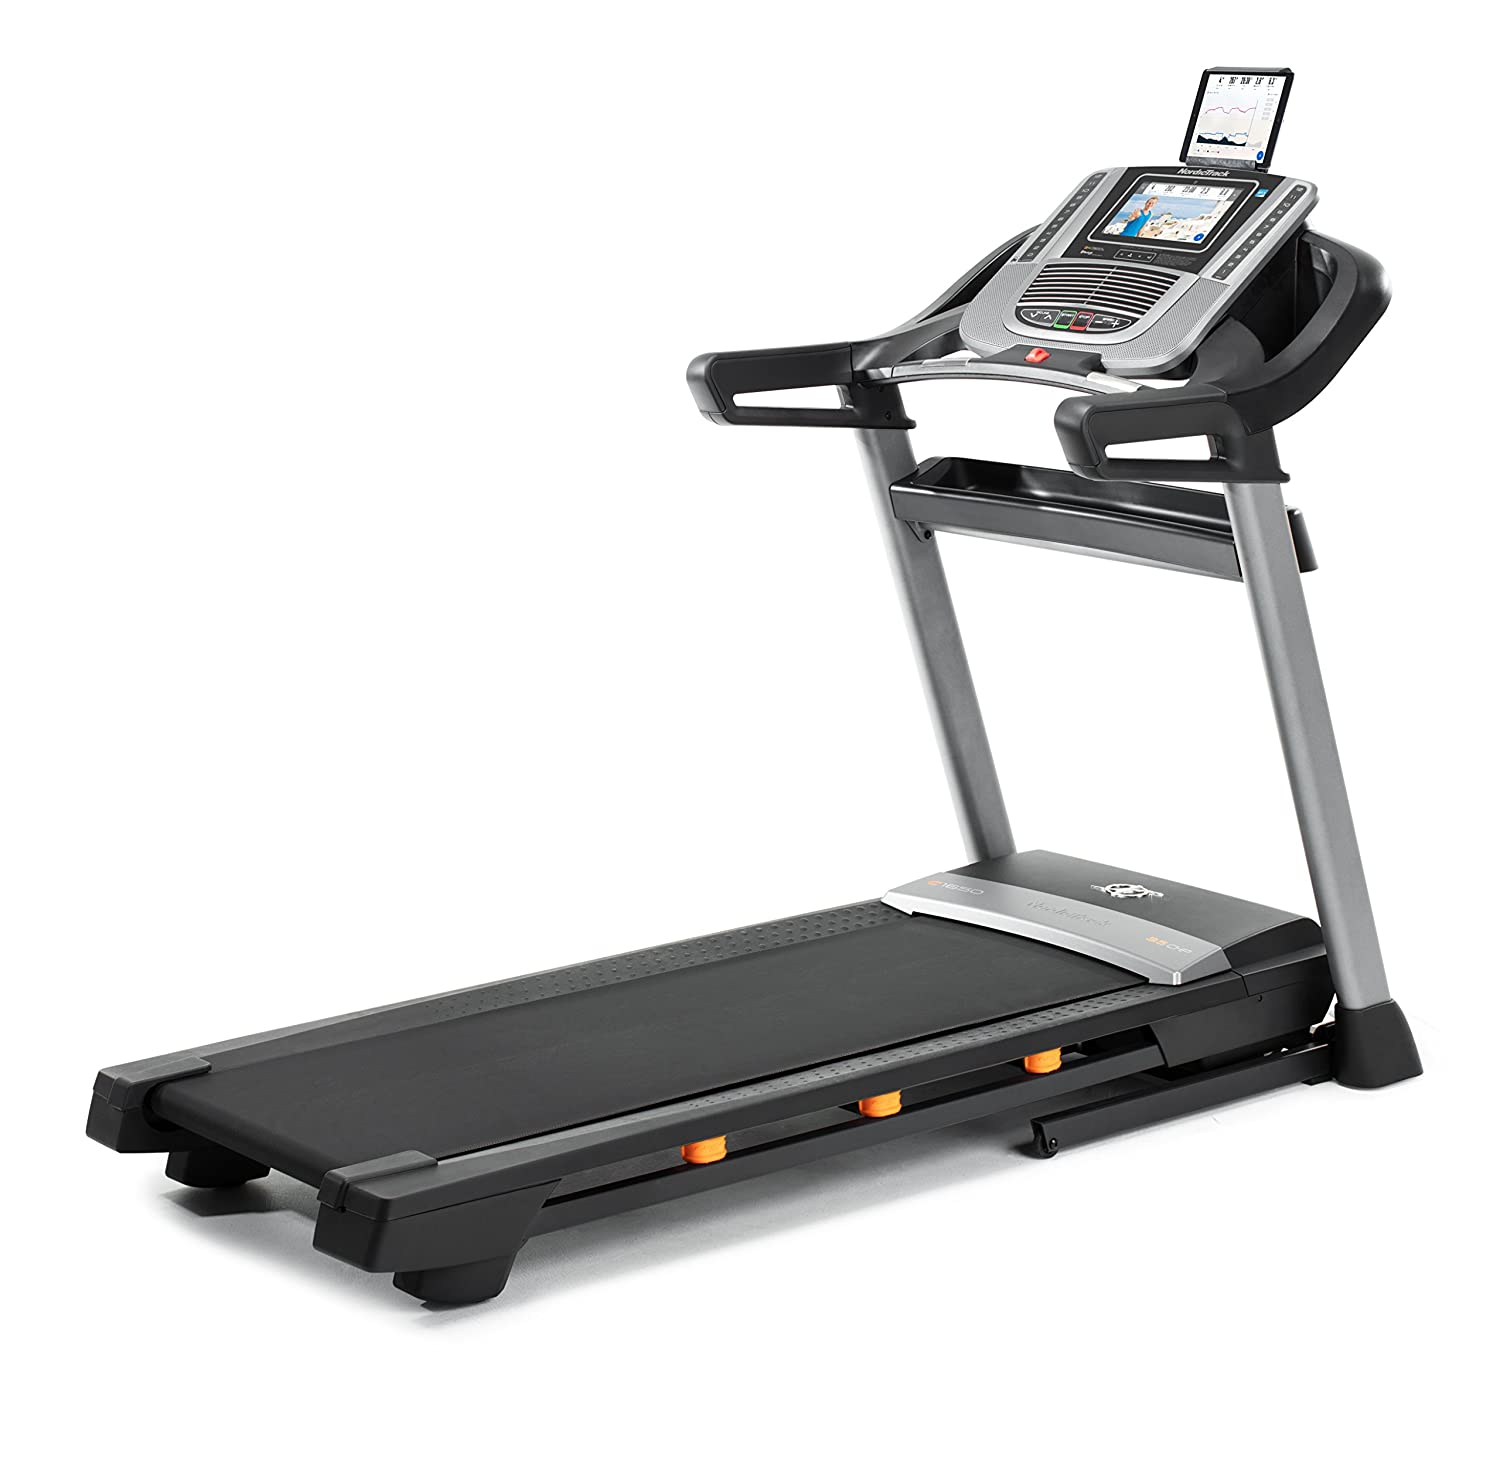 NordicTrack C 1650 Treadmill – The Best Treadmill Under 1500